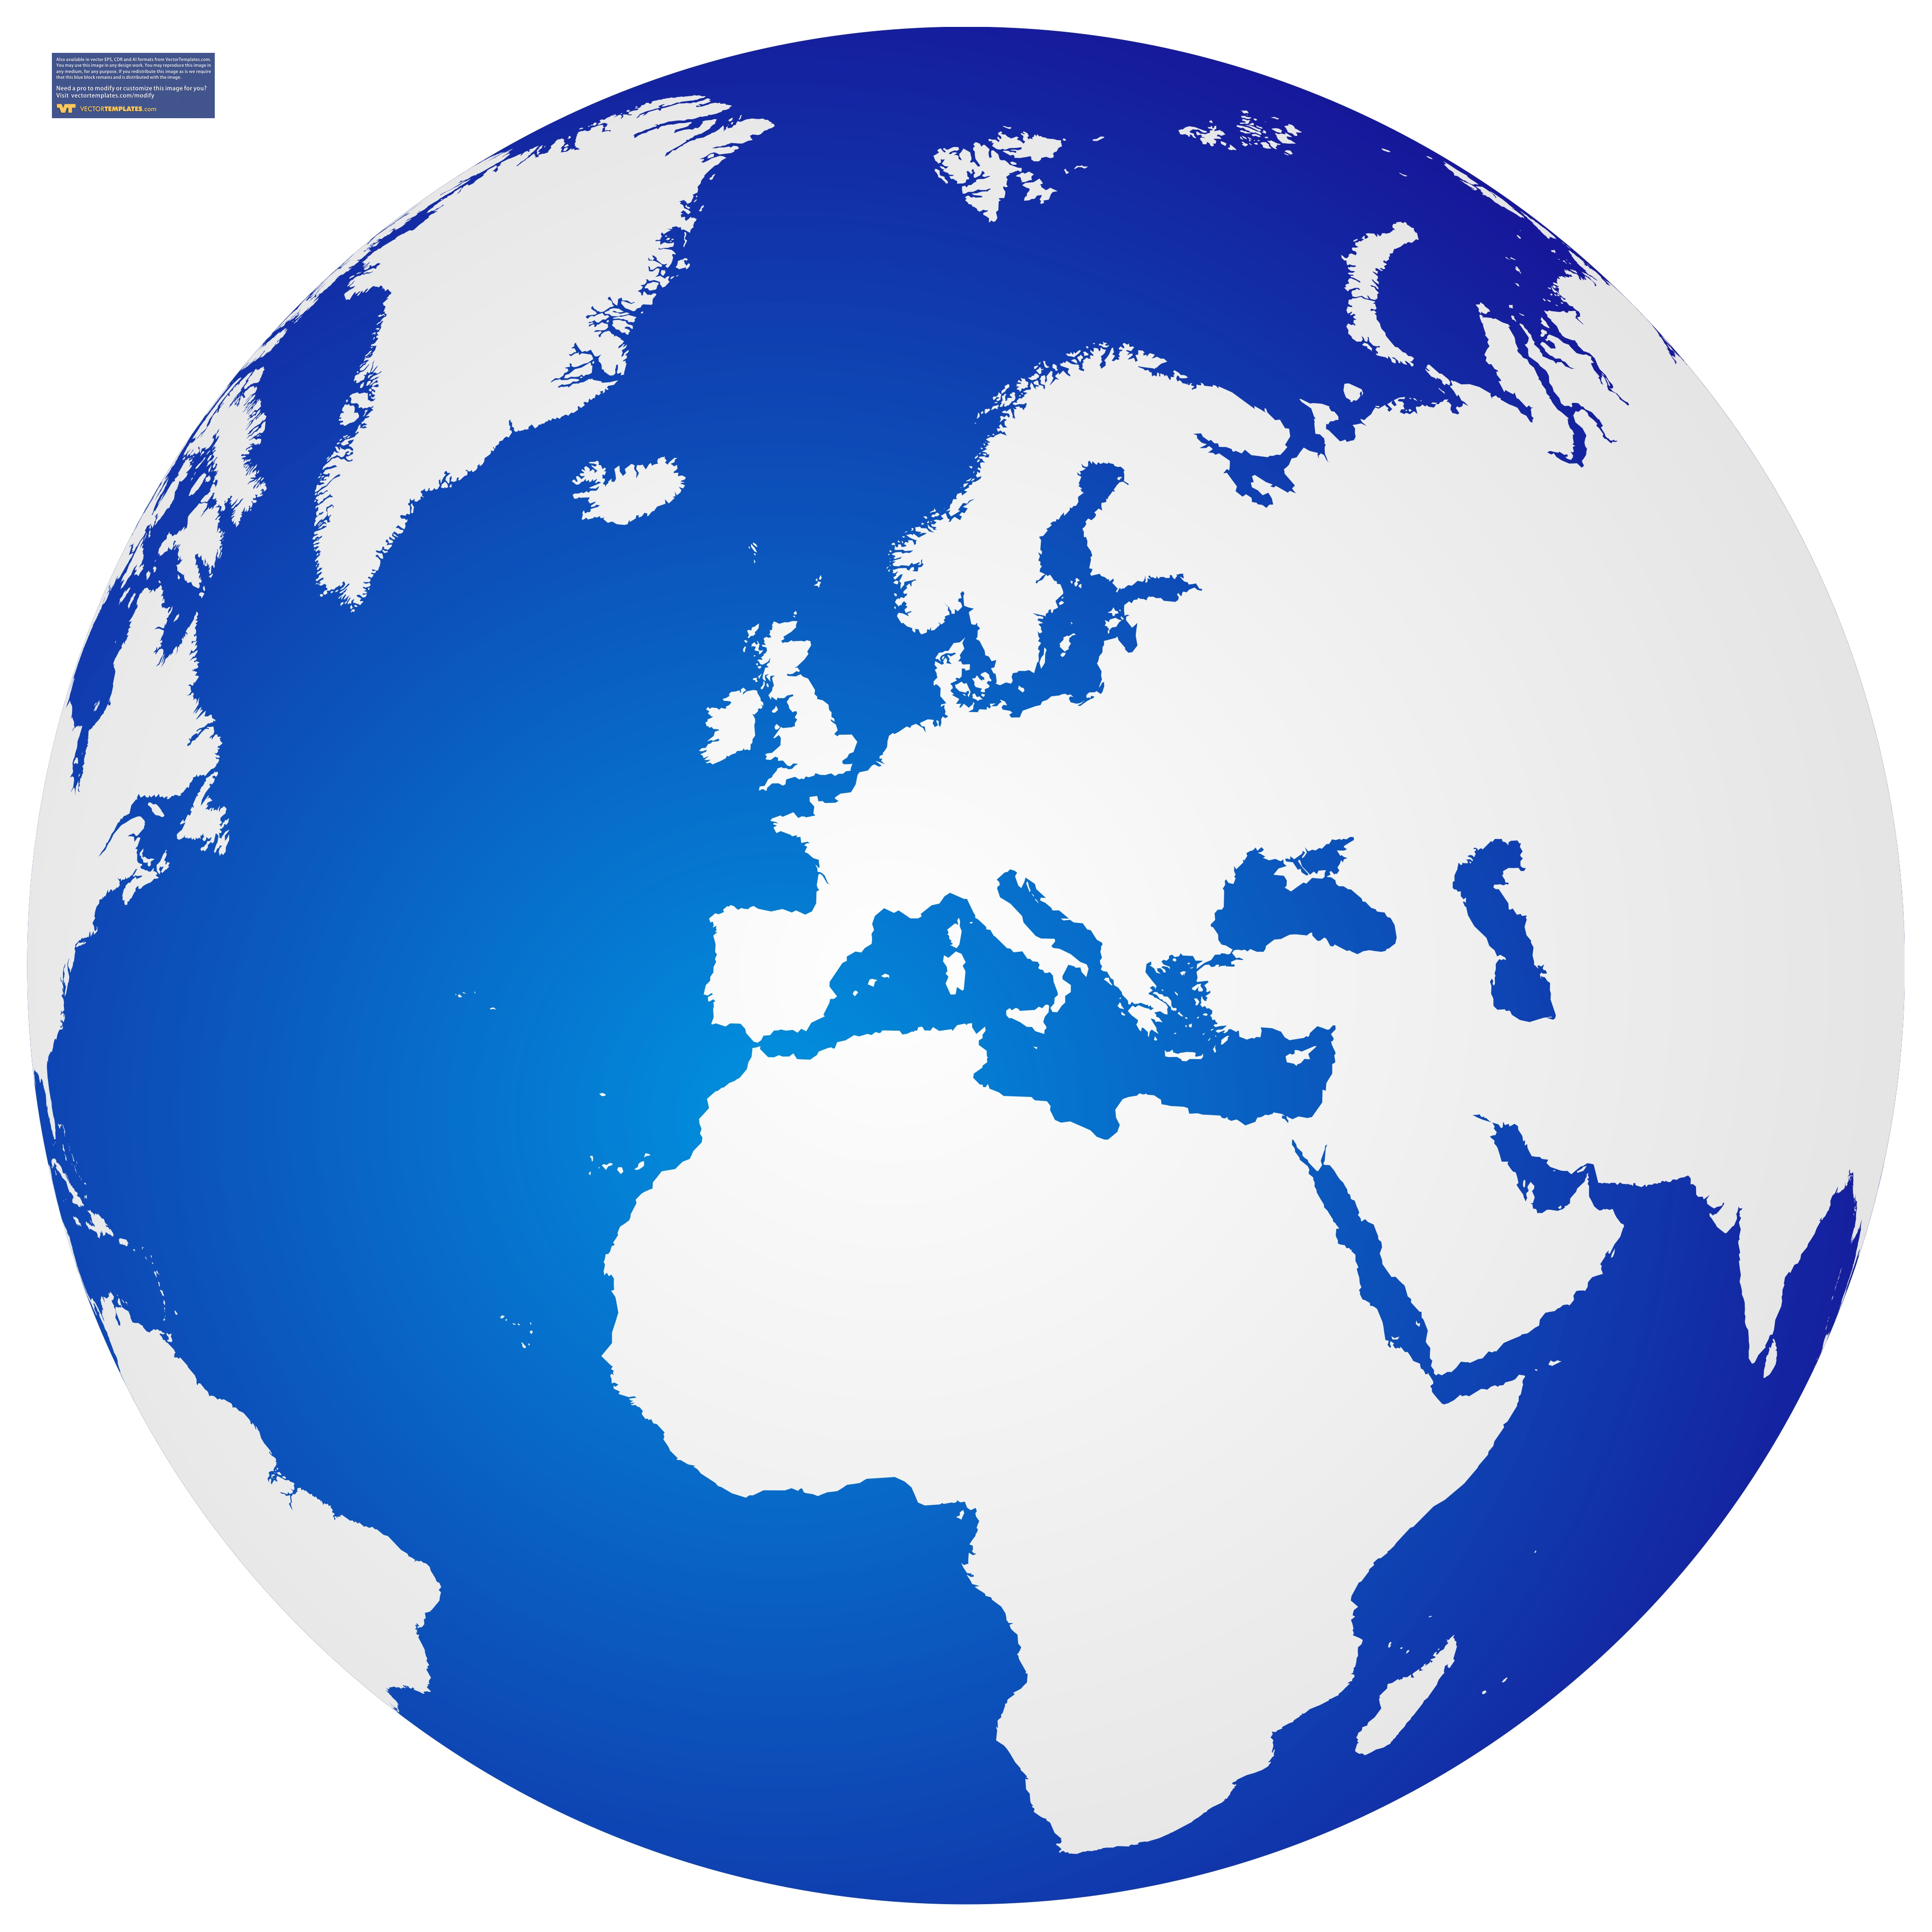 Planet earth clipart europe.